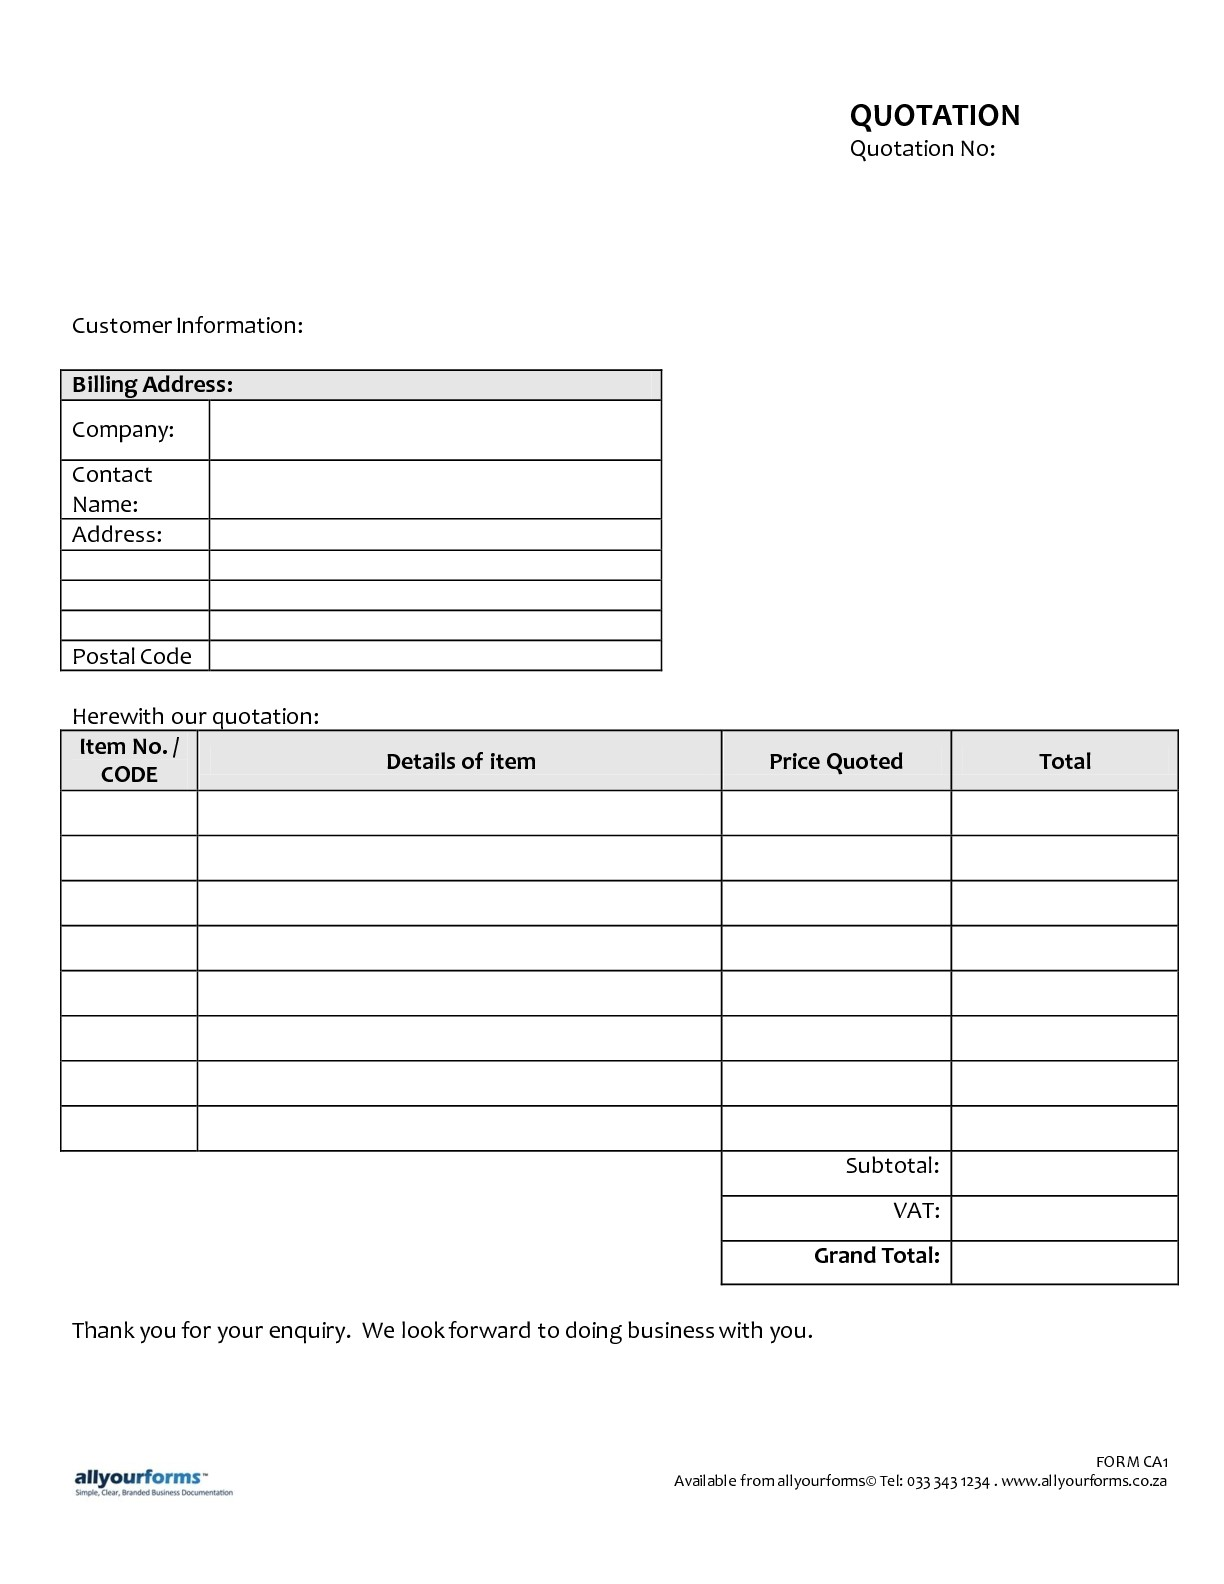 40+ Simple Business Requirements Document Templates   Template Lab